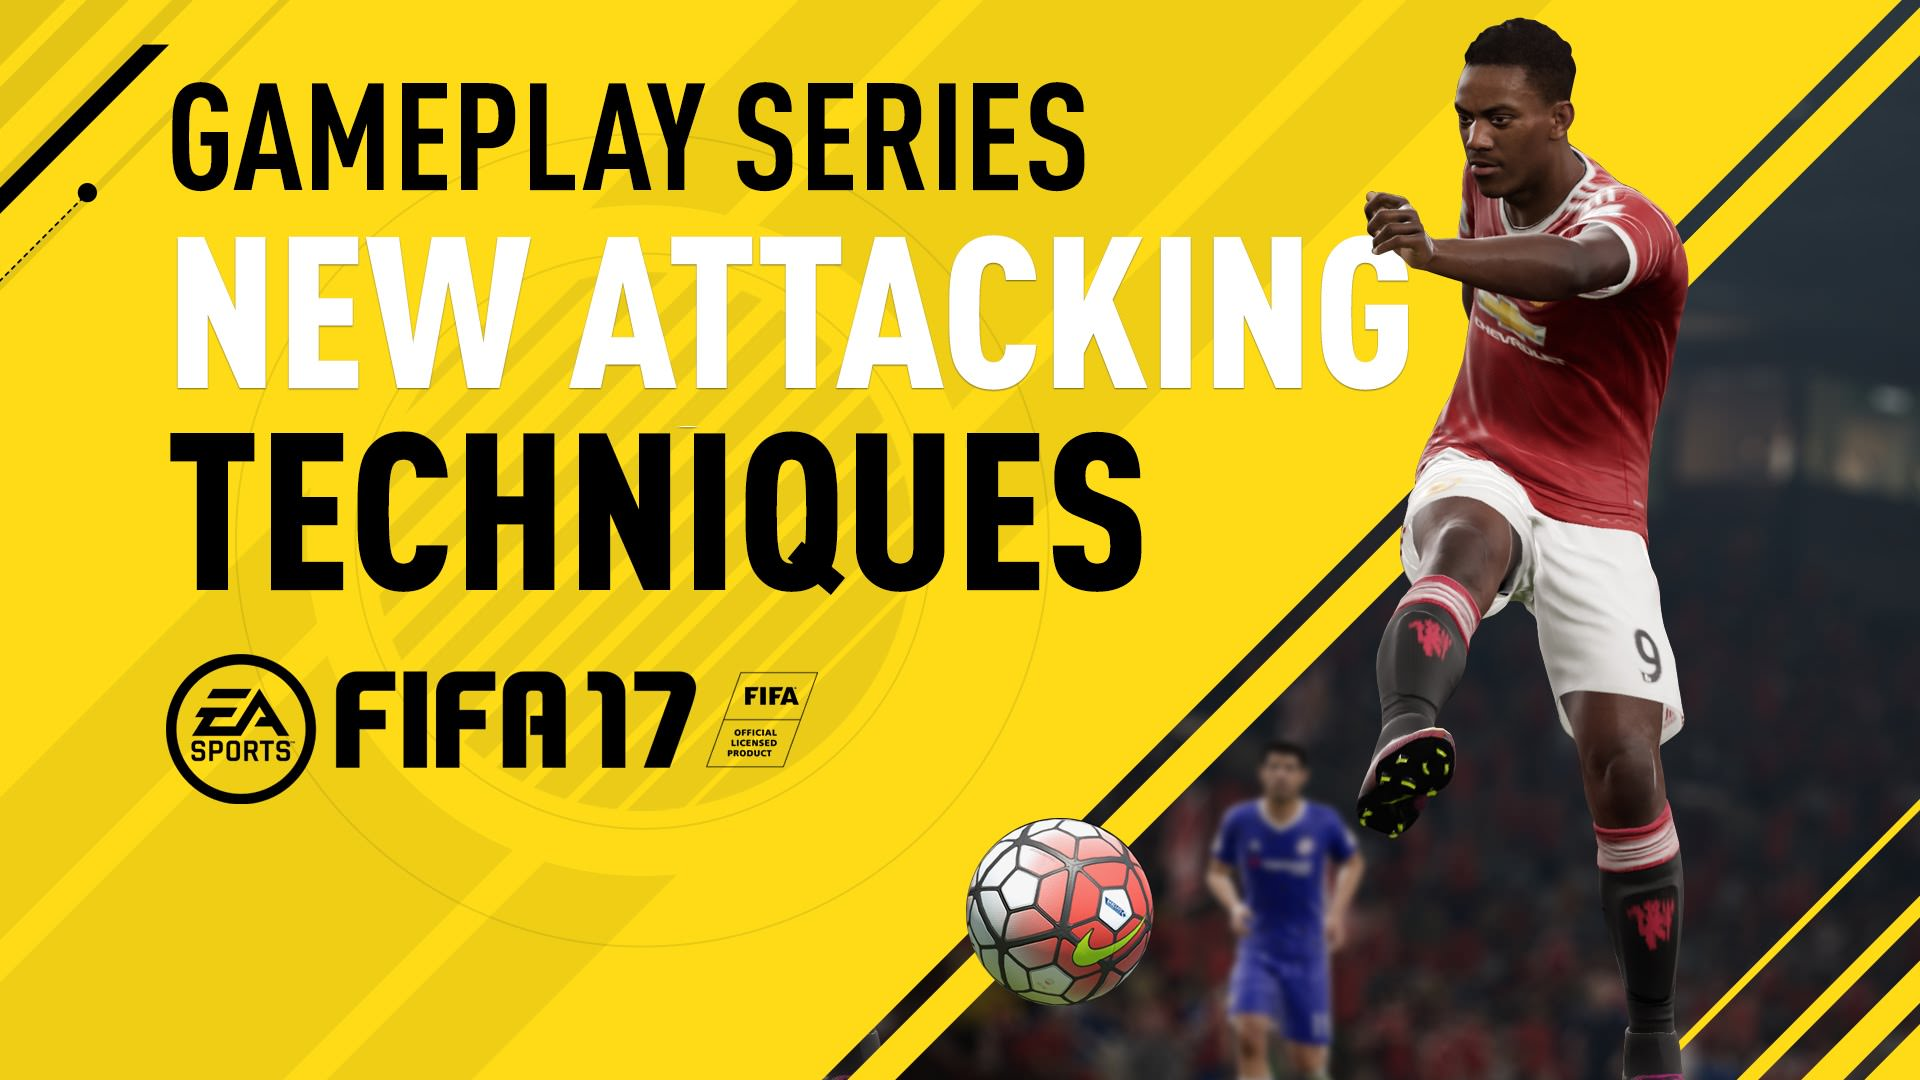 FIFA 17 Gameplay Features – New Attacking Techniques